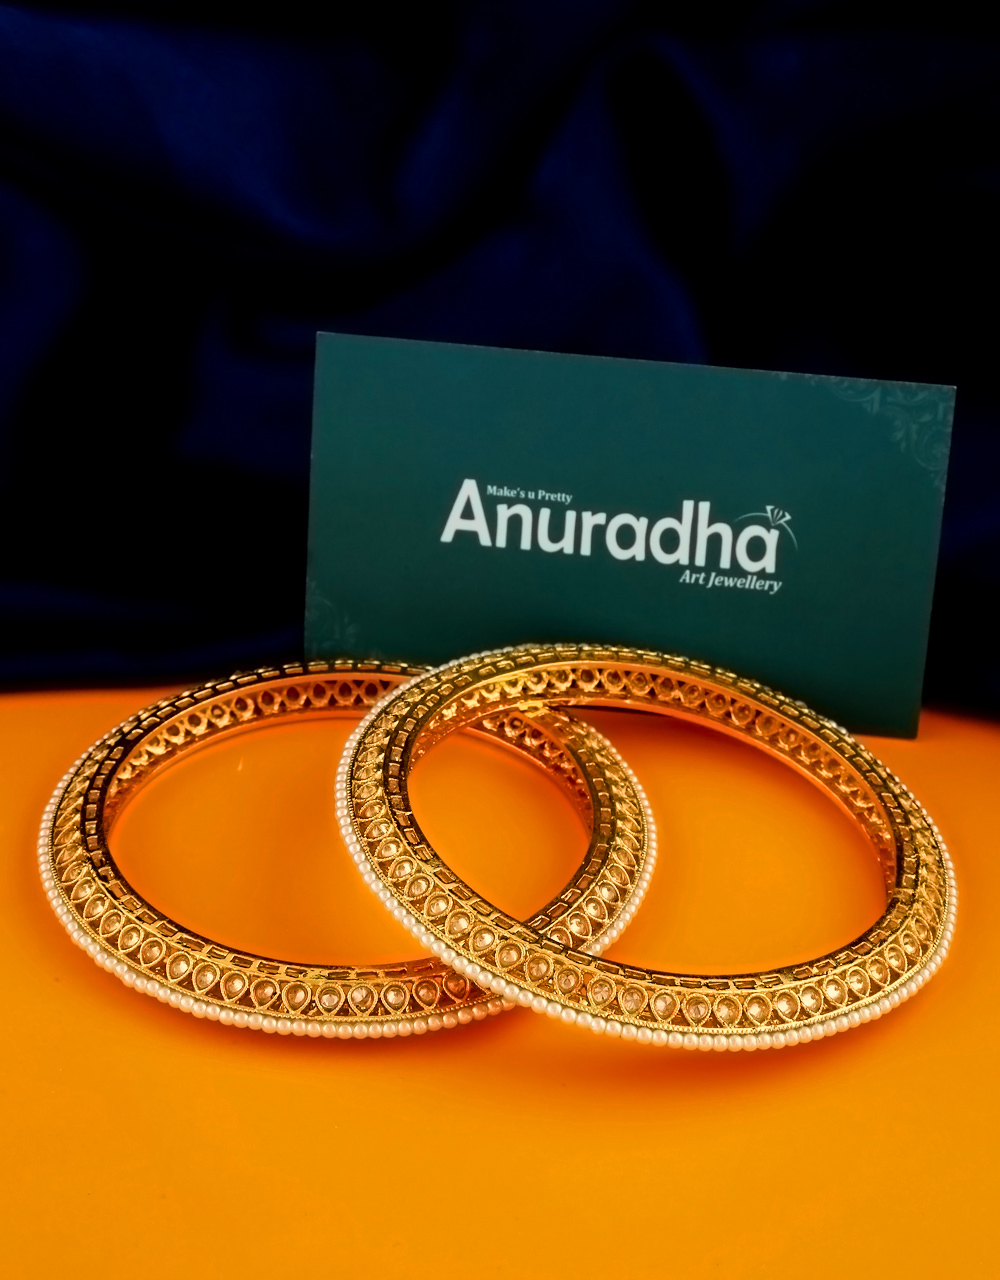 Very Classy Gold Finish Styled With Pearls Beads Stunning Bangles